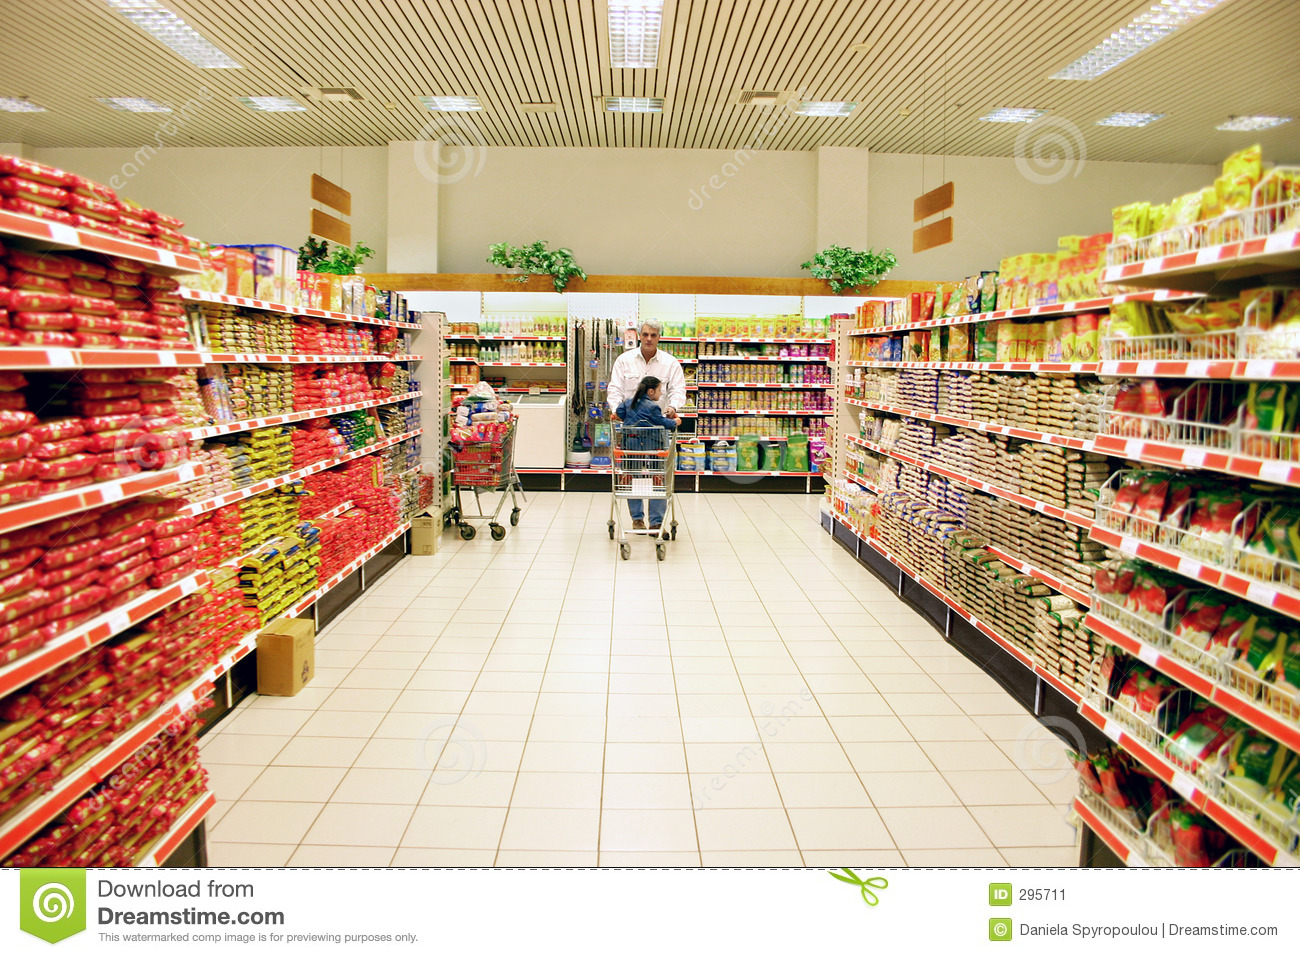 Supermarket Clipart 1 together with 148W0250 also A 14919034 in addition 367566 in addition Vintage Logo Collection Volume 2. on grocery cart clip art